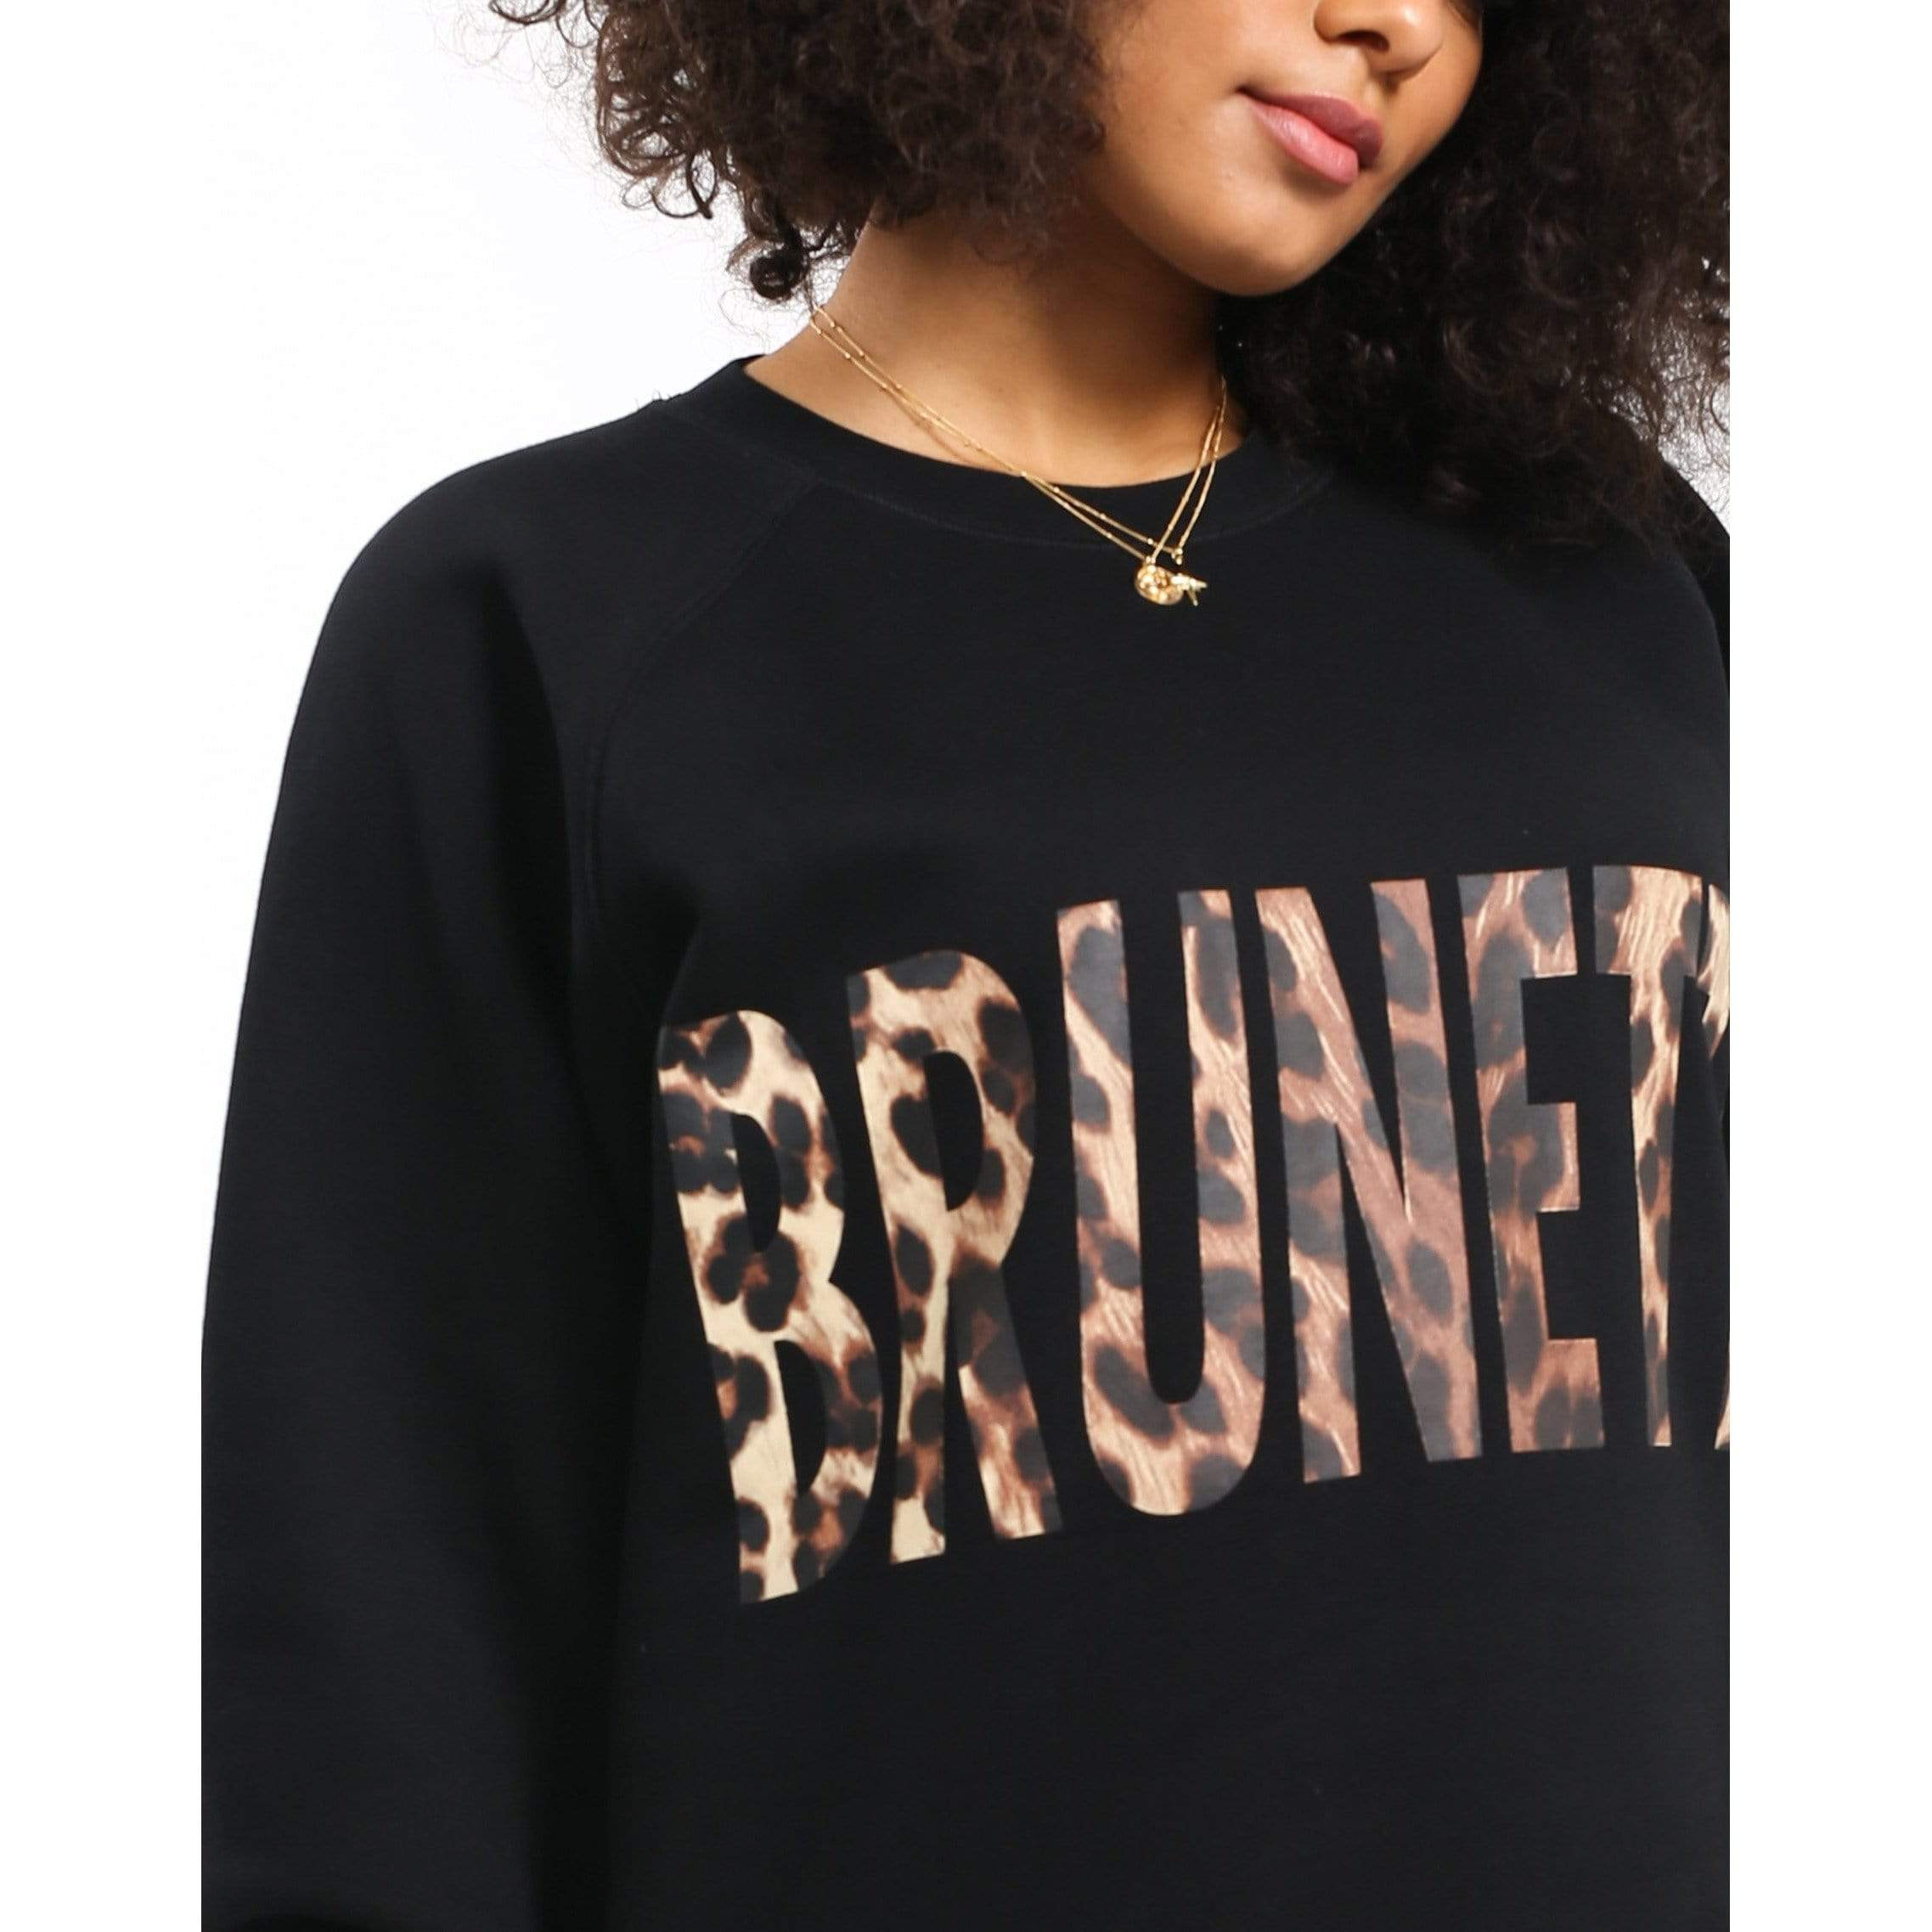 Brunette the Label Brunette the Label Brunette Leopard Big Sister